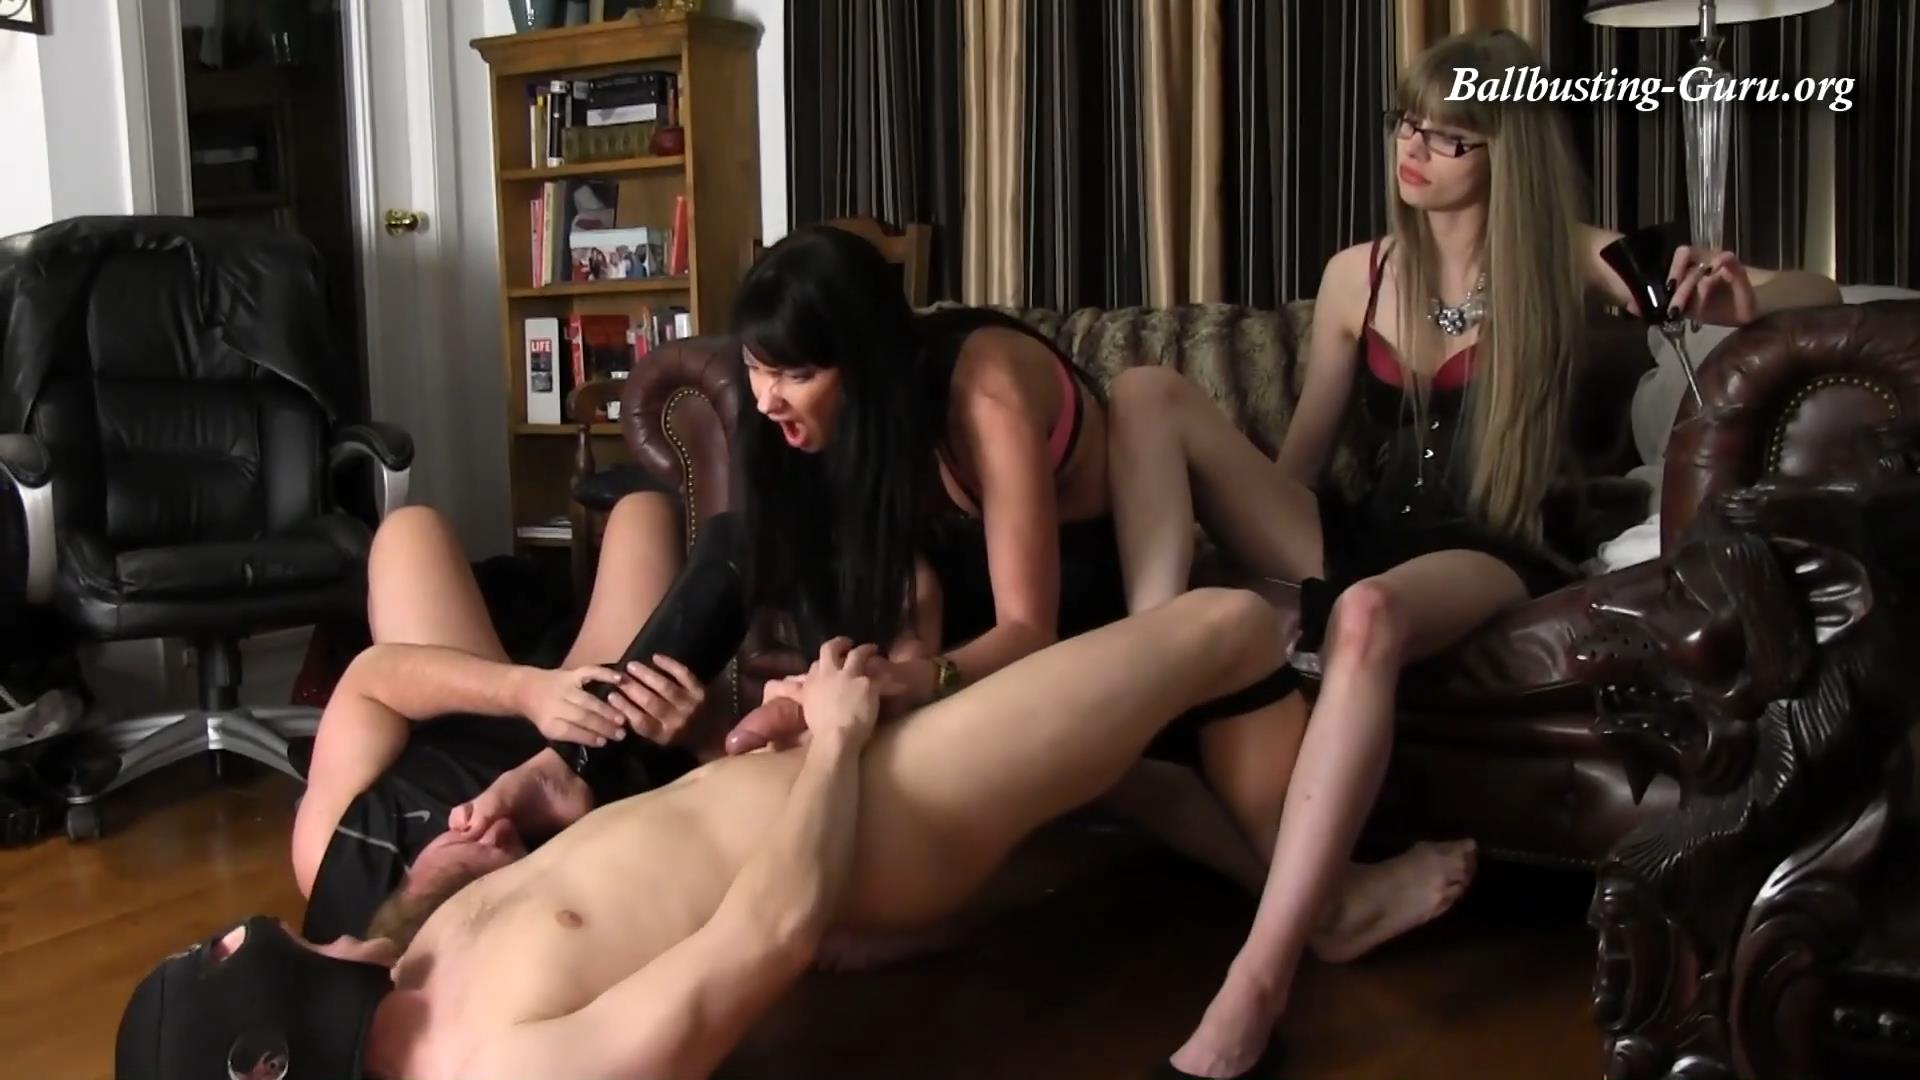 Ballbusting Bitches slapping and kicking our bitches - kandy kink femdom